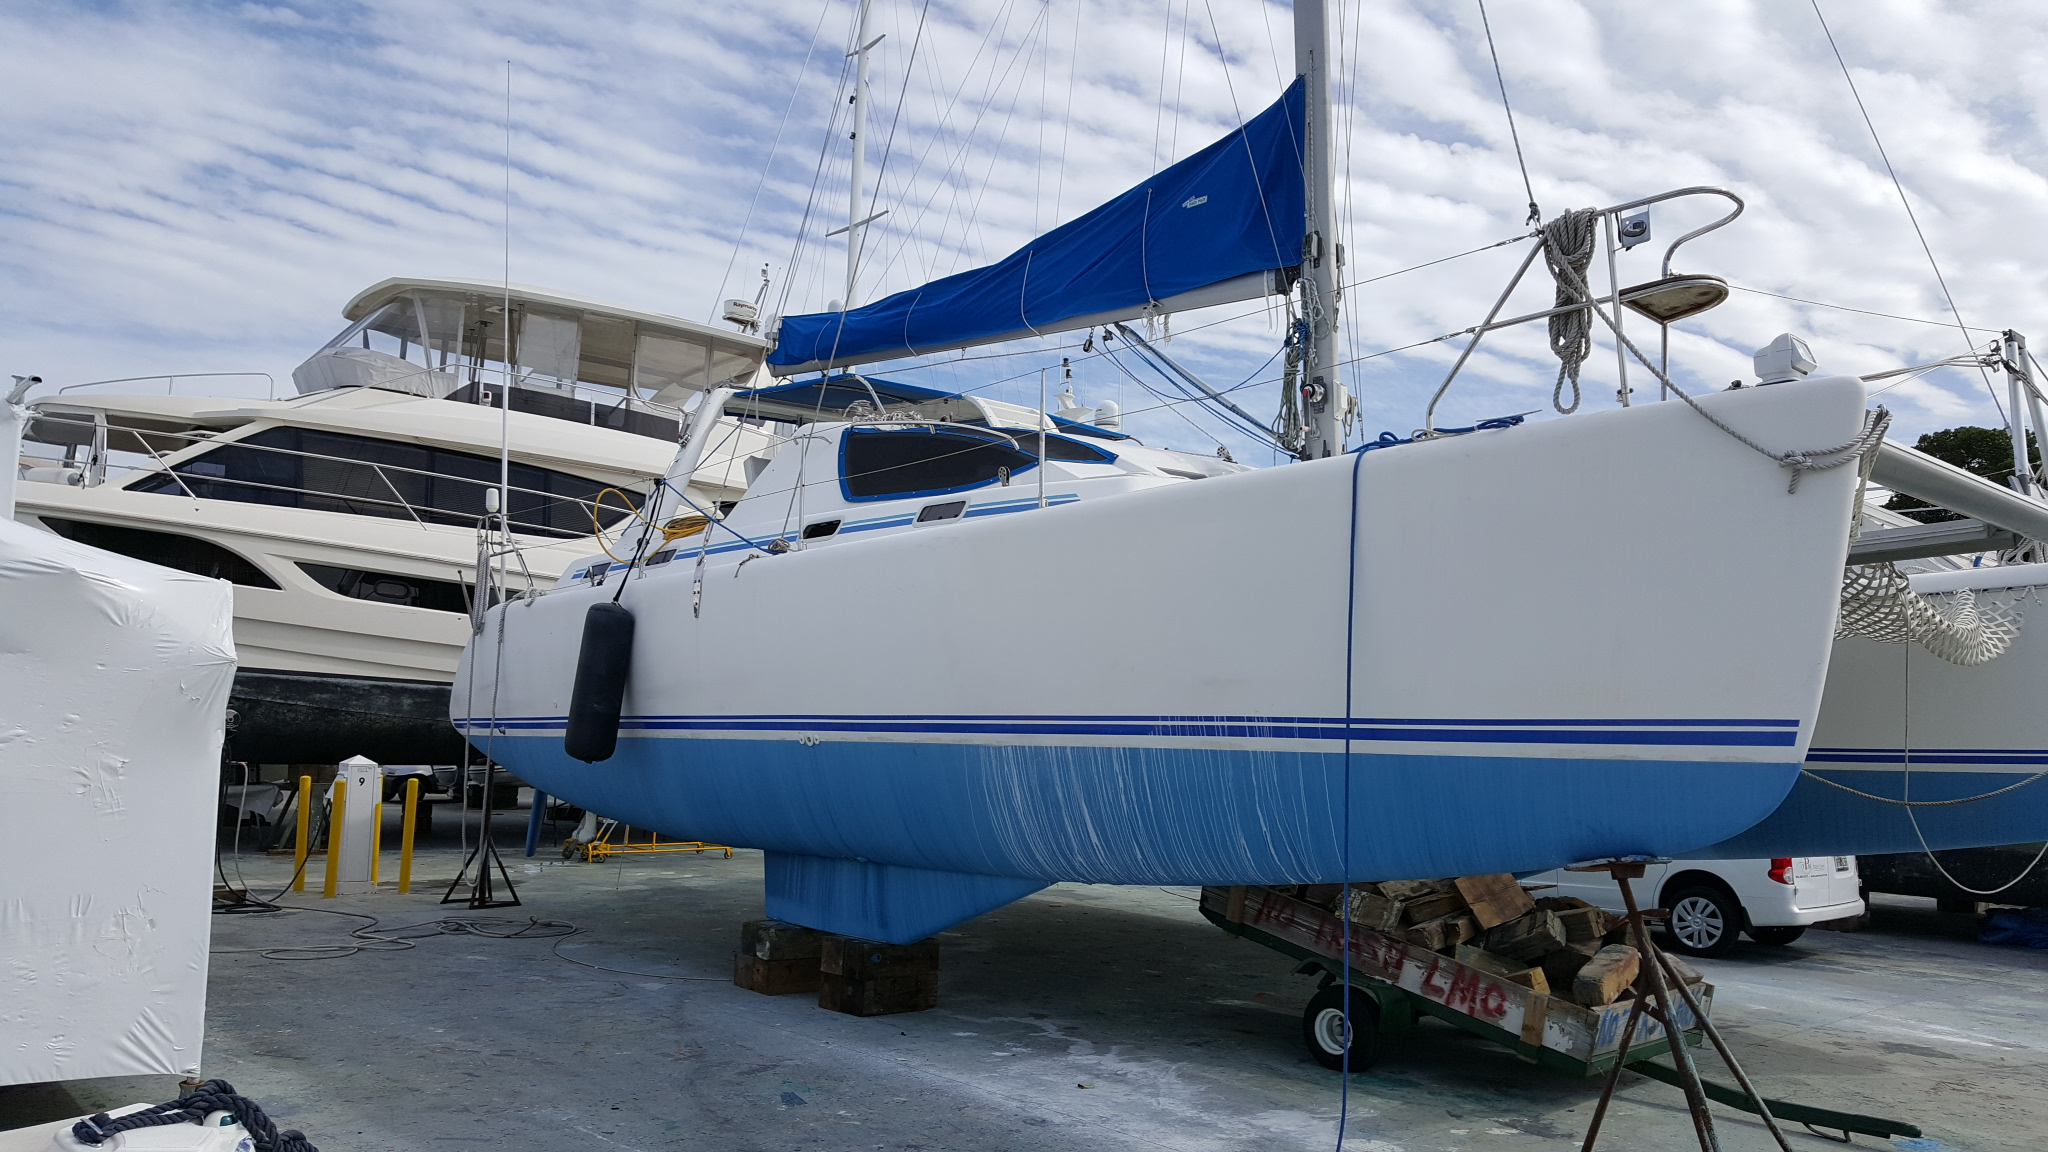 Preowned Sail Catamarans for Sale 2002 Admiral 38 Boat Highlights